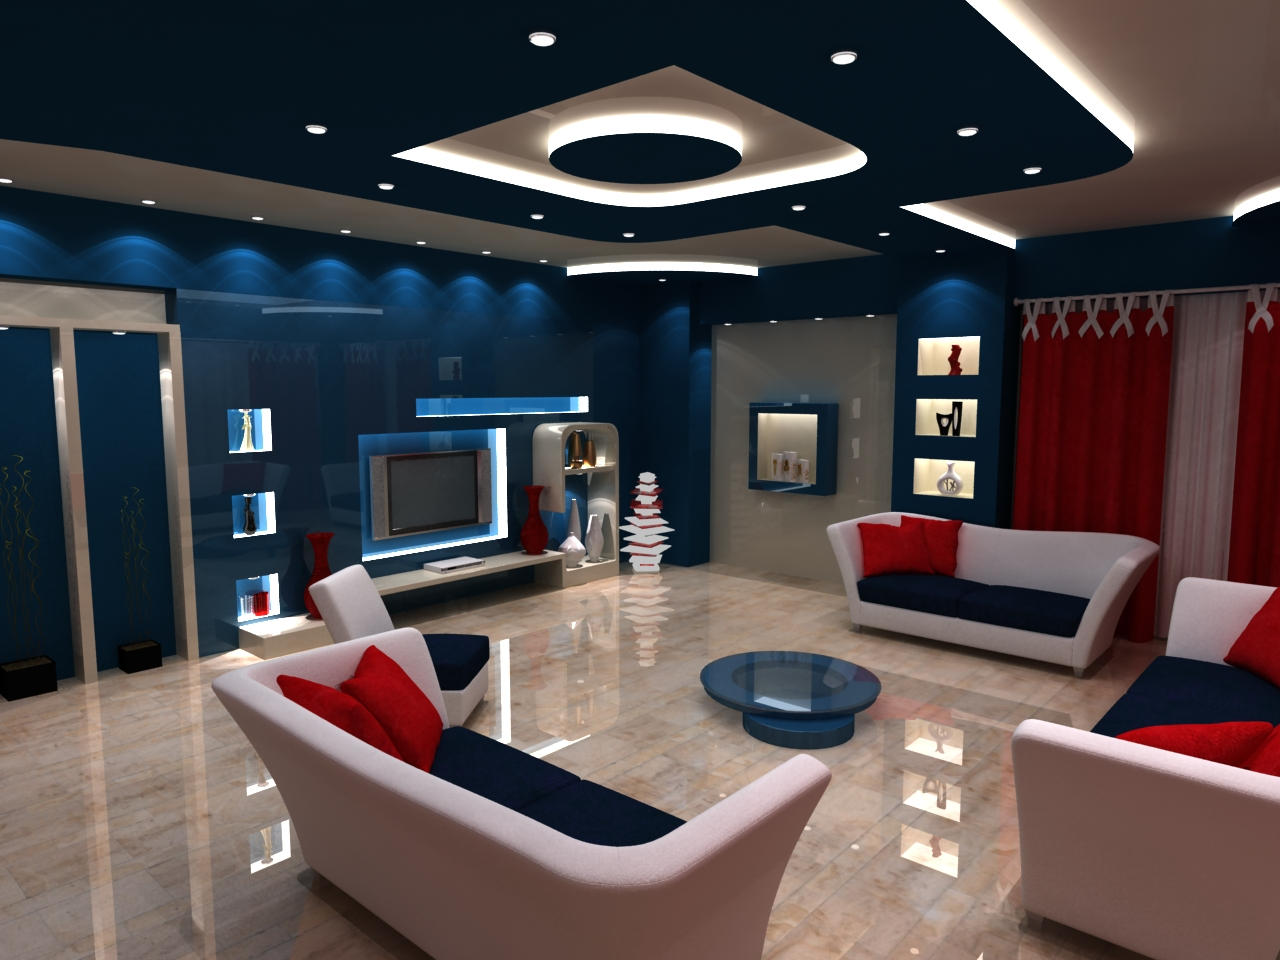 Interior flat design 2 by geactormy on deviantart for Flat design pictures